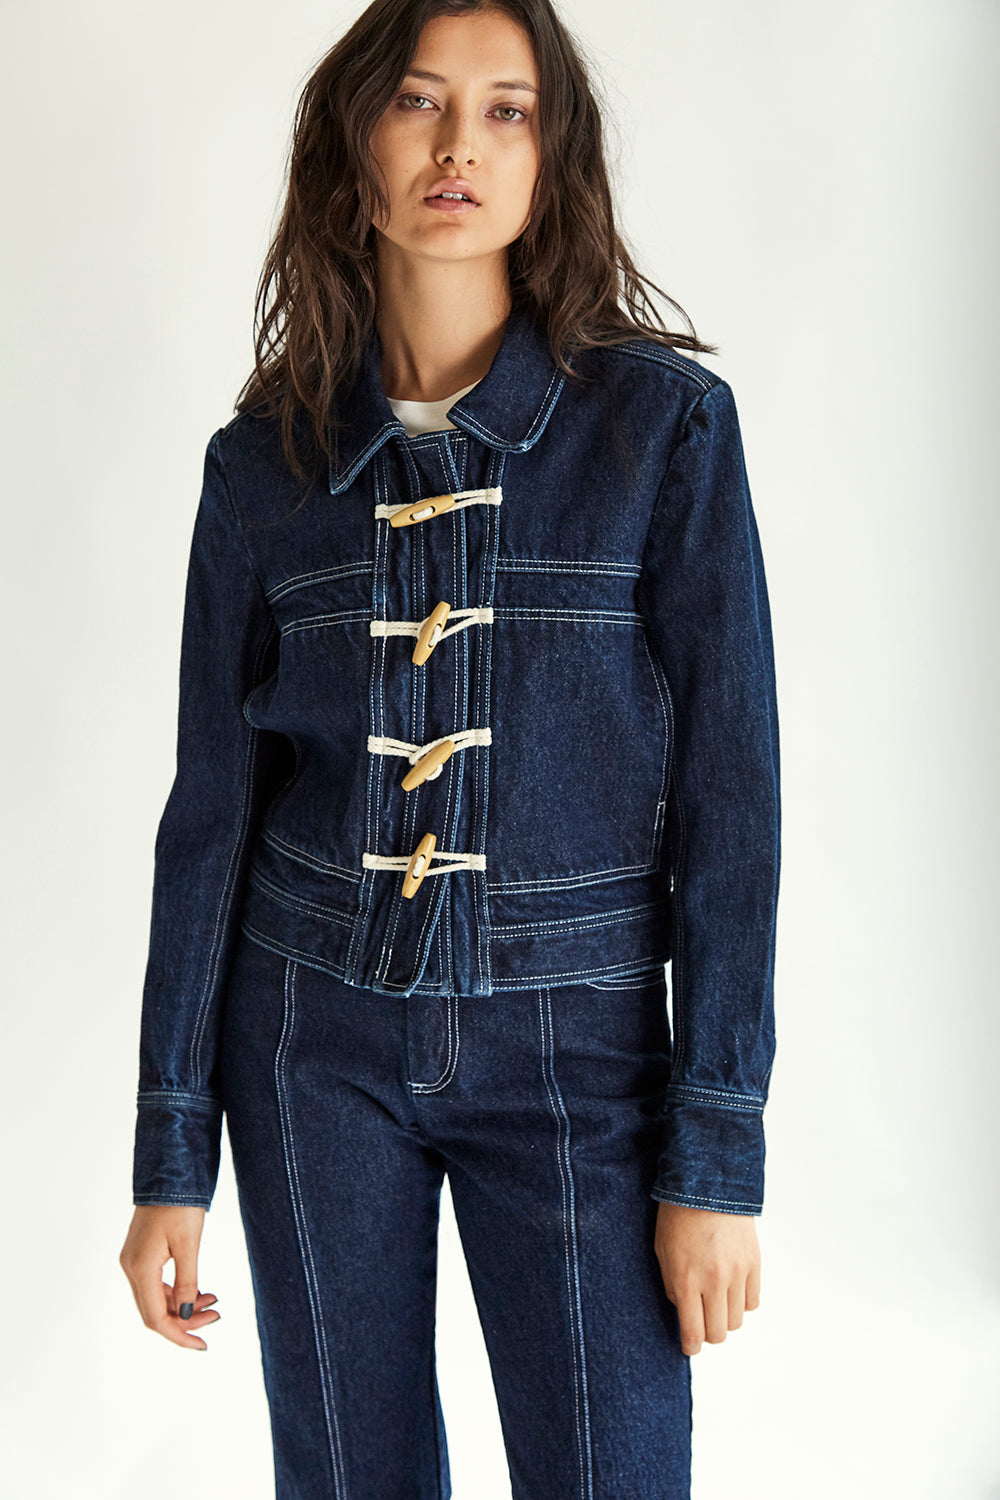 Clarke Denim Jacket - Indigo - Wynn Hamlyn — Shop